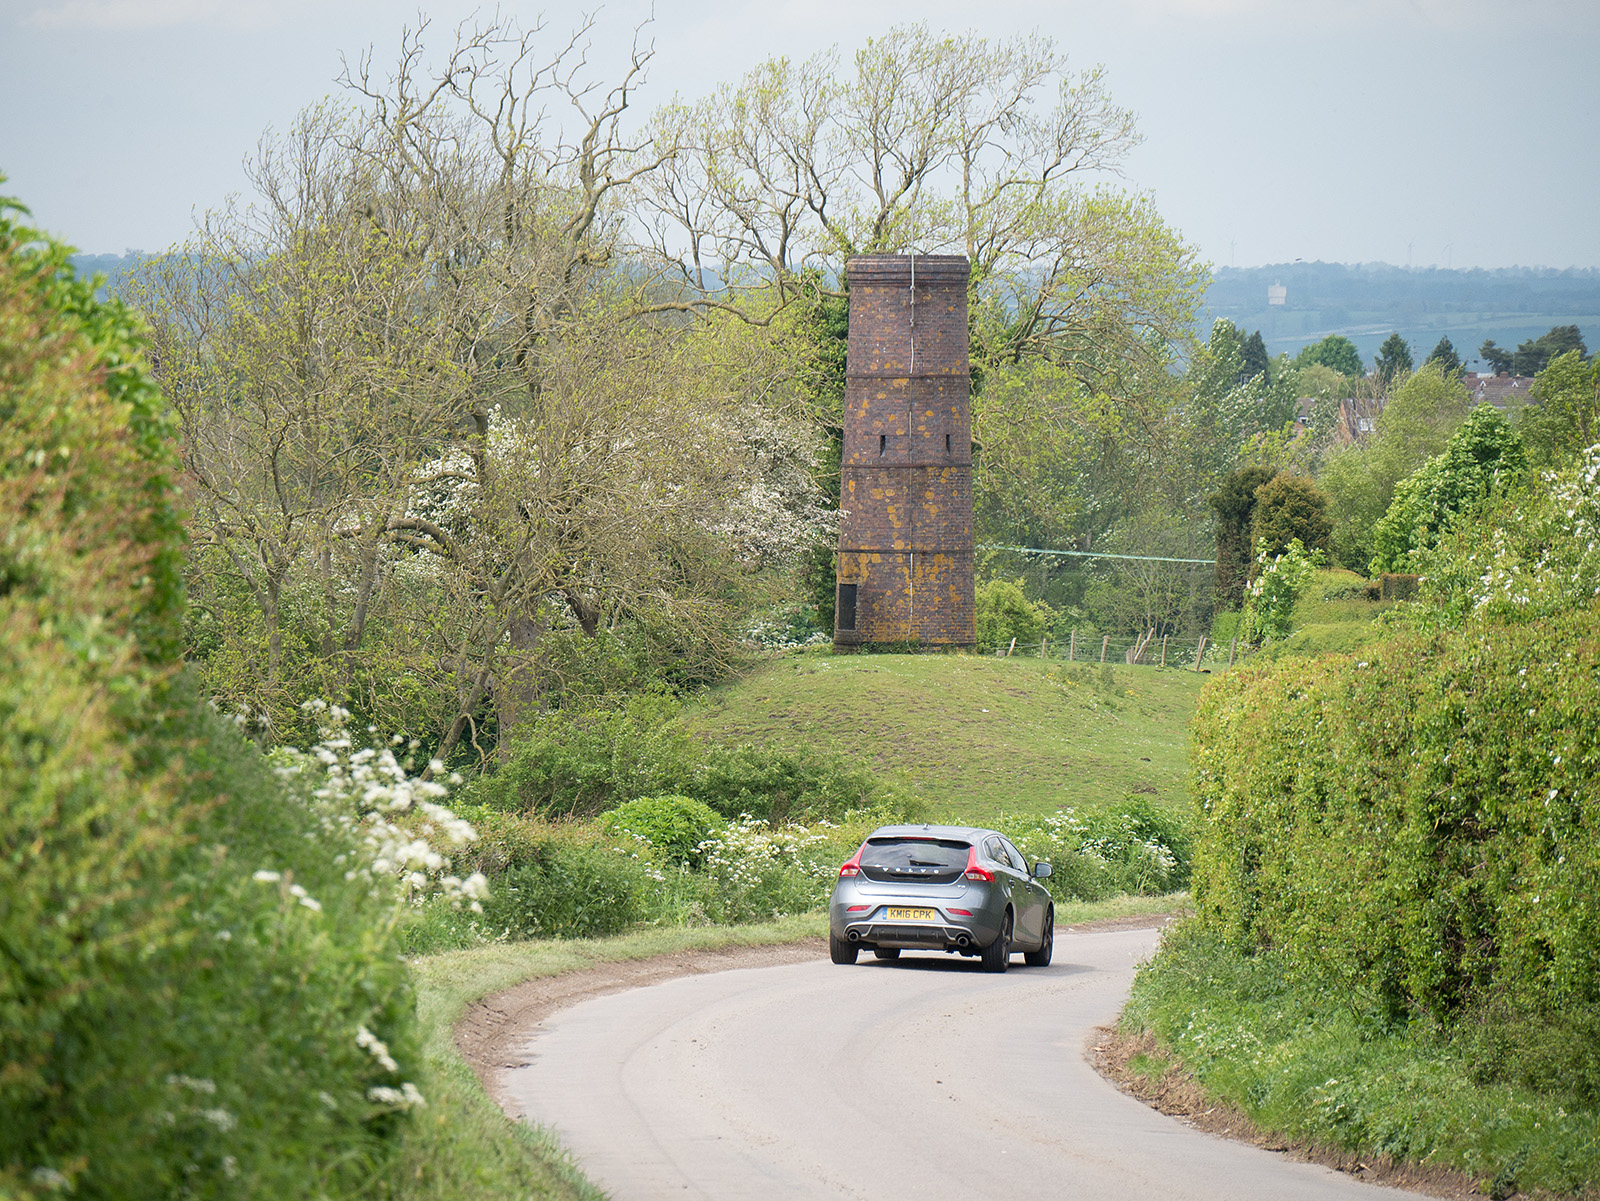 Tower above an air shaft shows that the end of the walk along the roadway is approaching